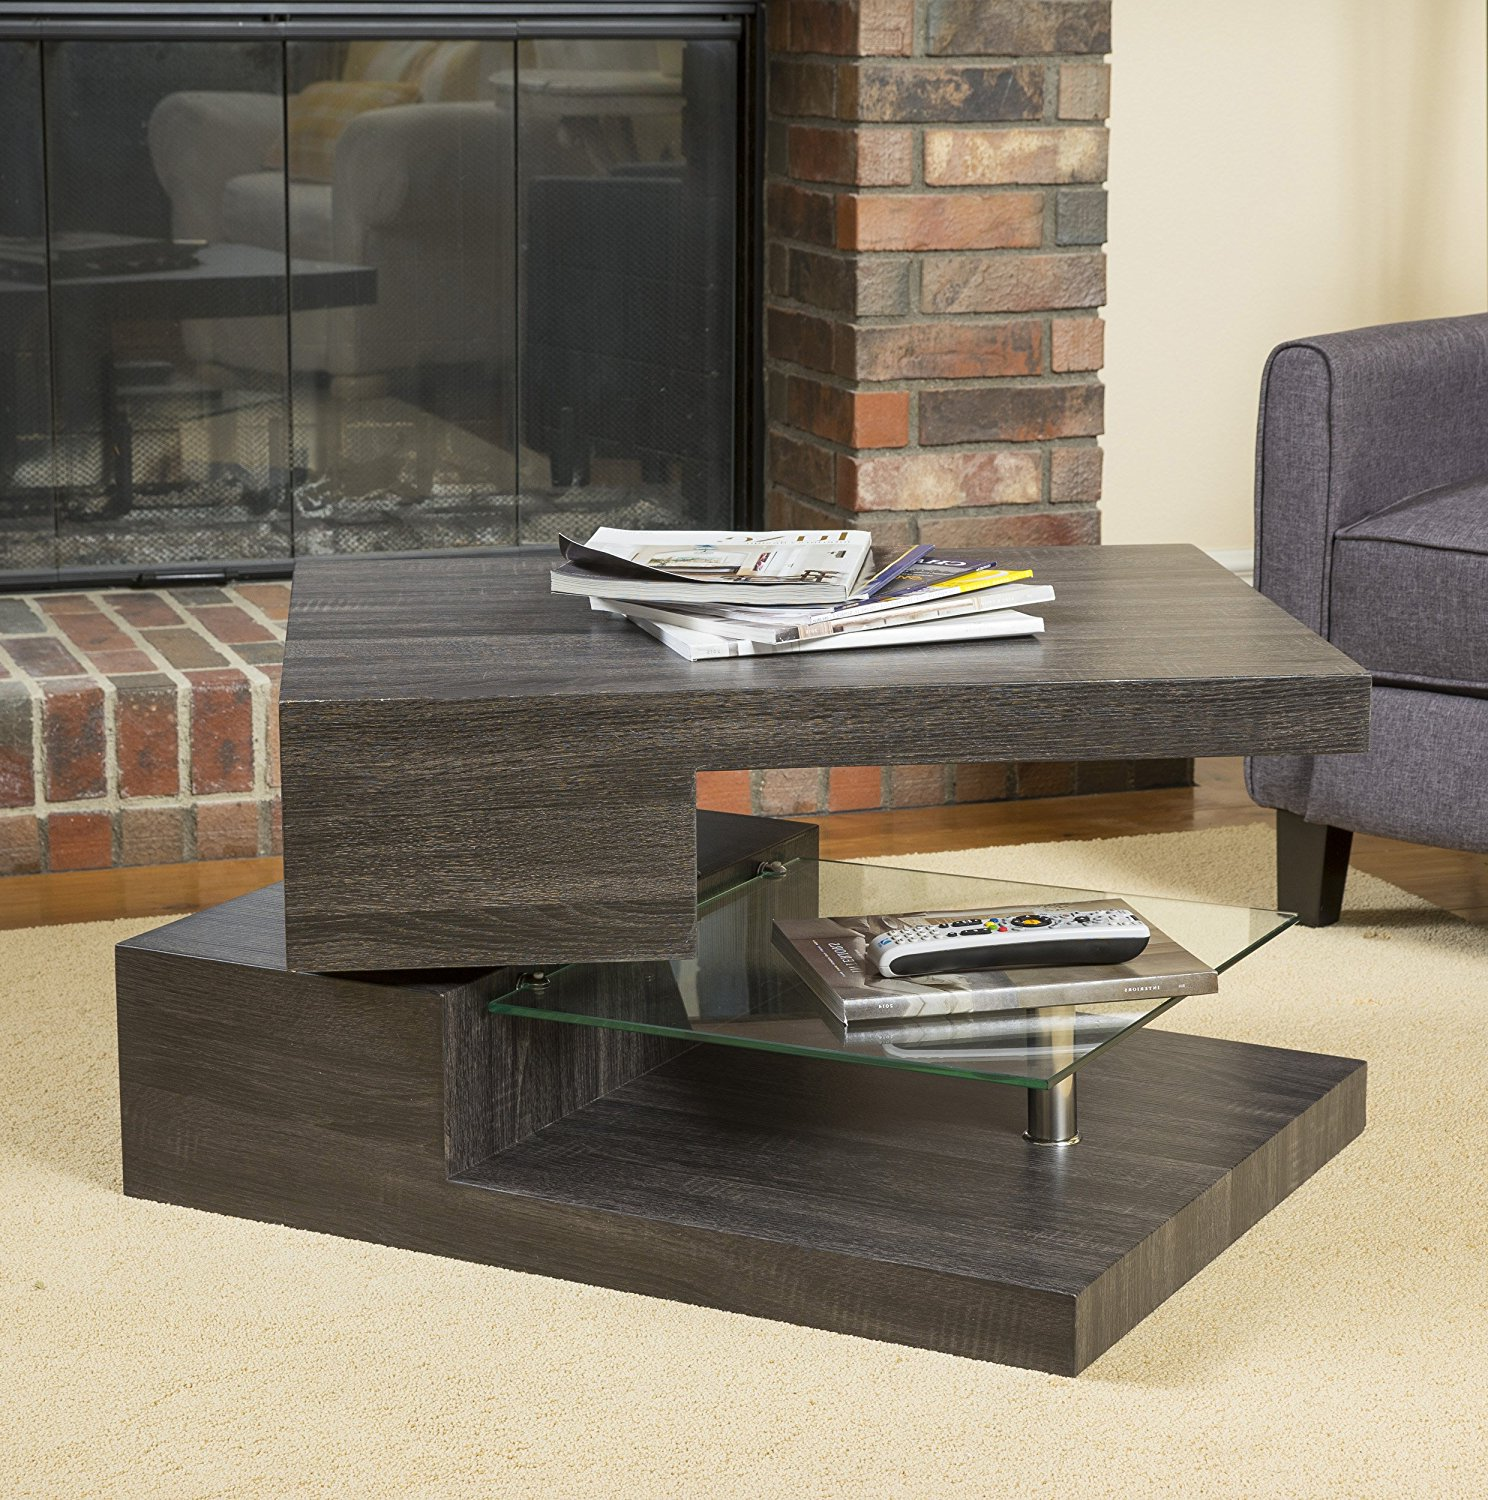 Best Modern Coffee Table Coffee Tables Under 200 For Modern Living Room Focal